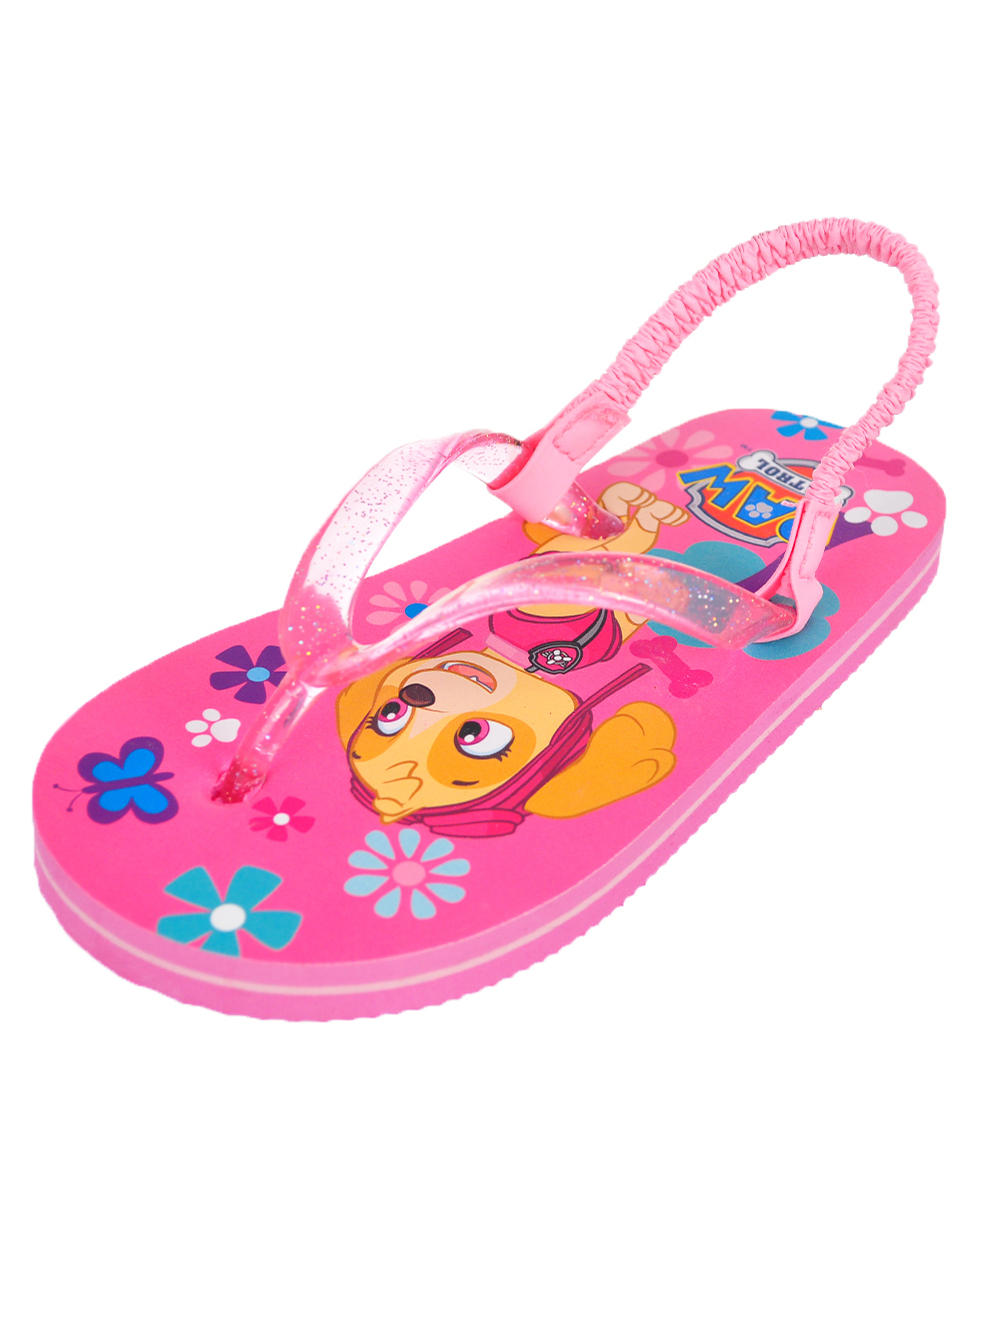 Girls' Sandals (Sizes 5 - 12)